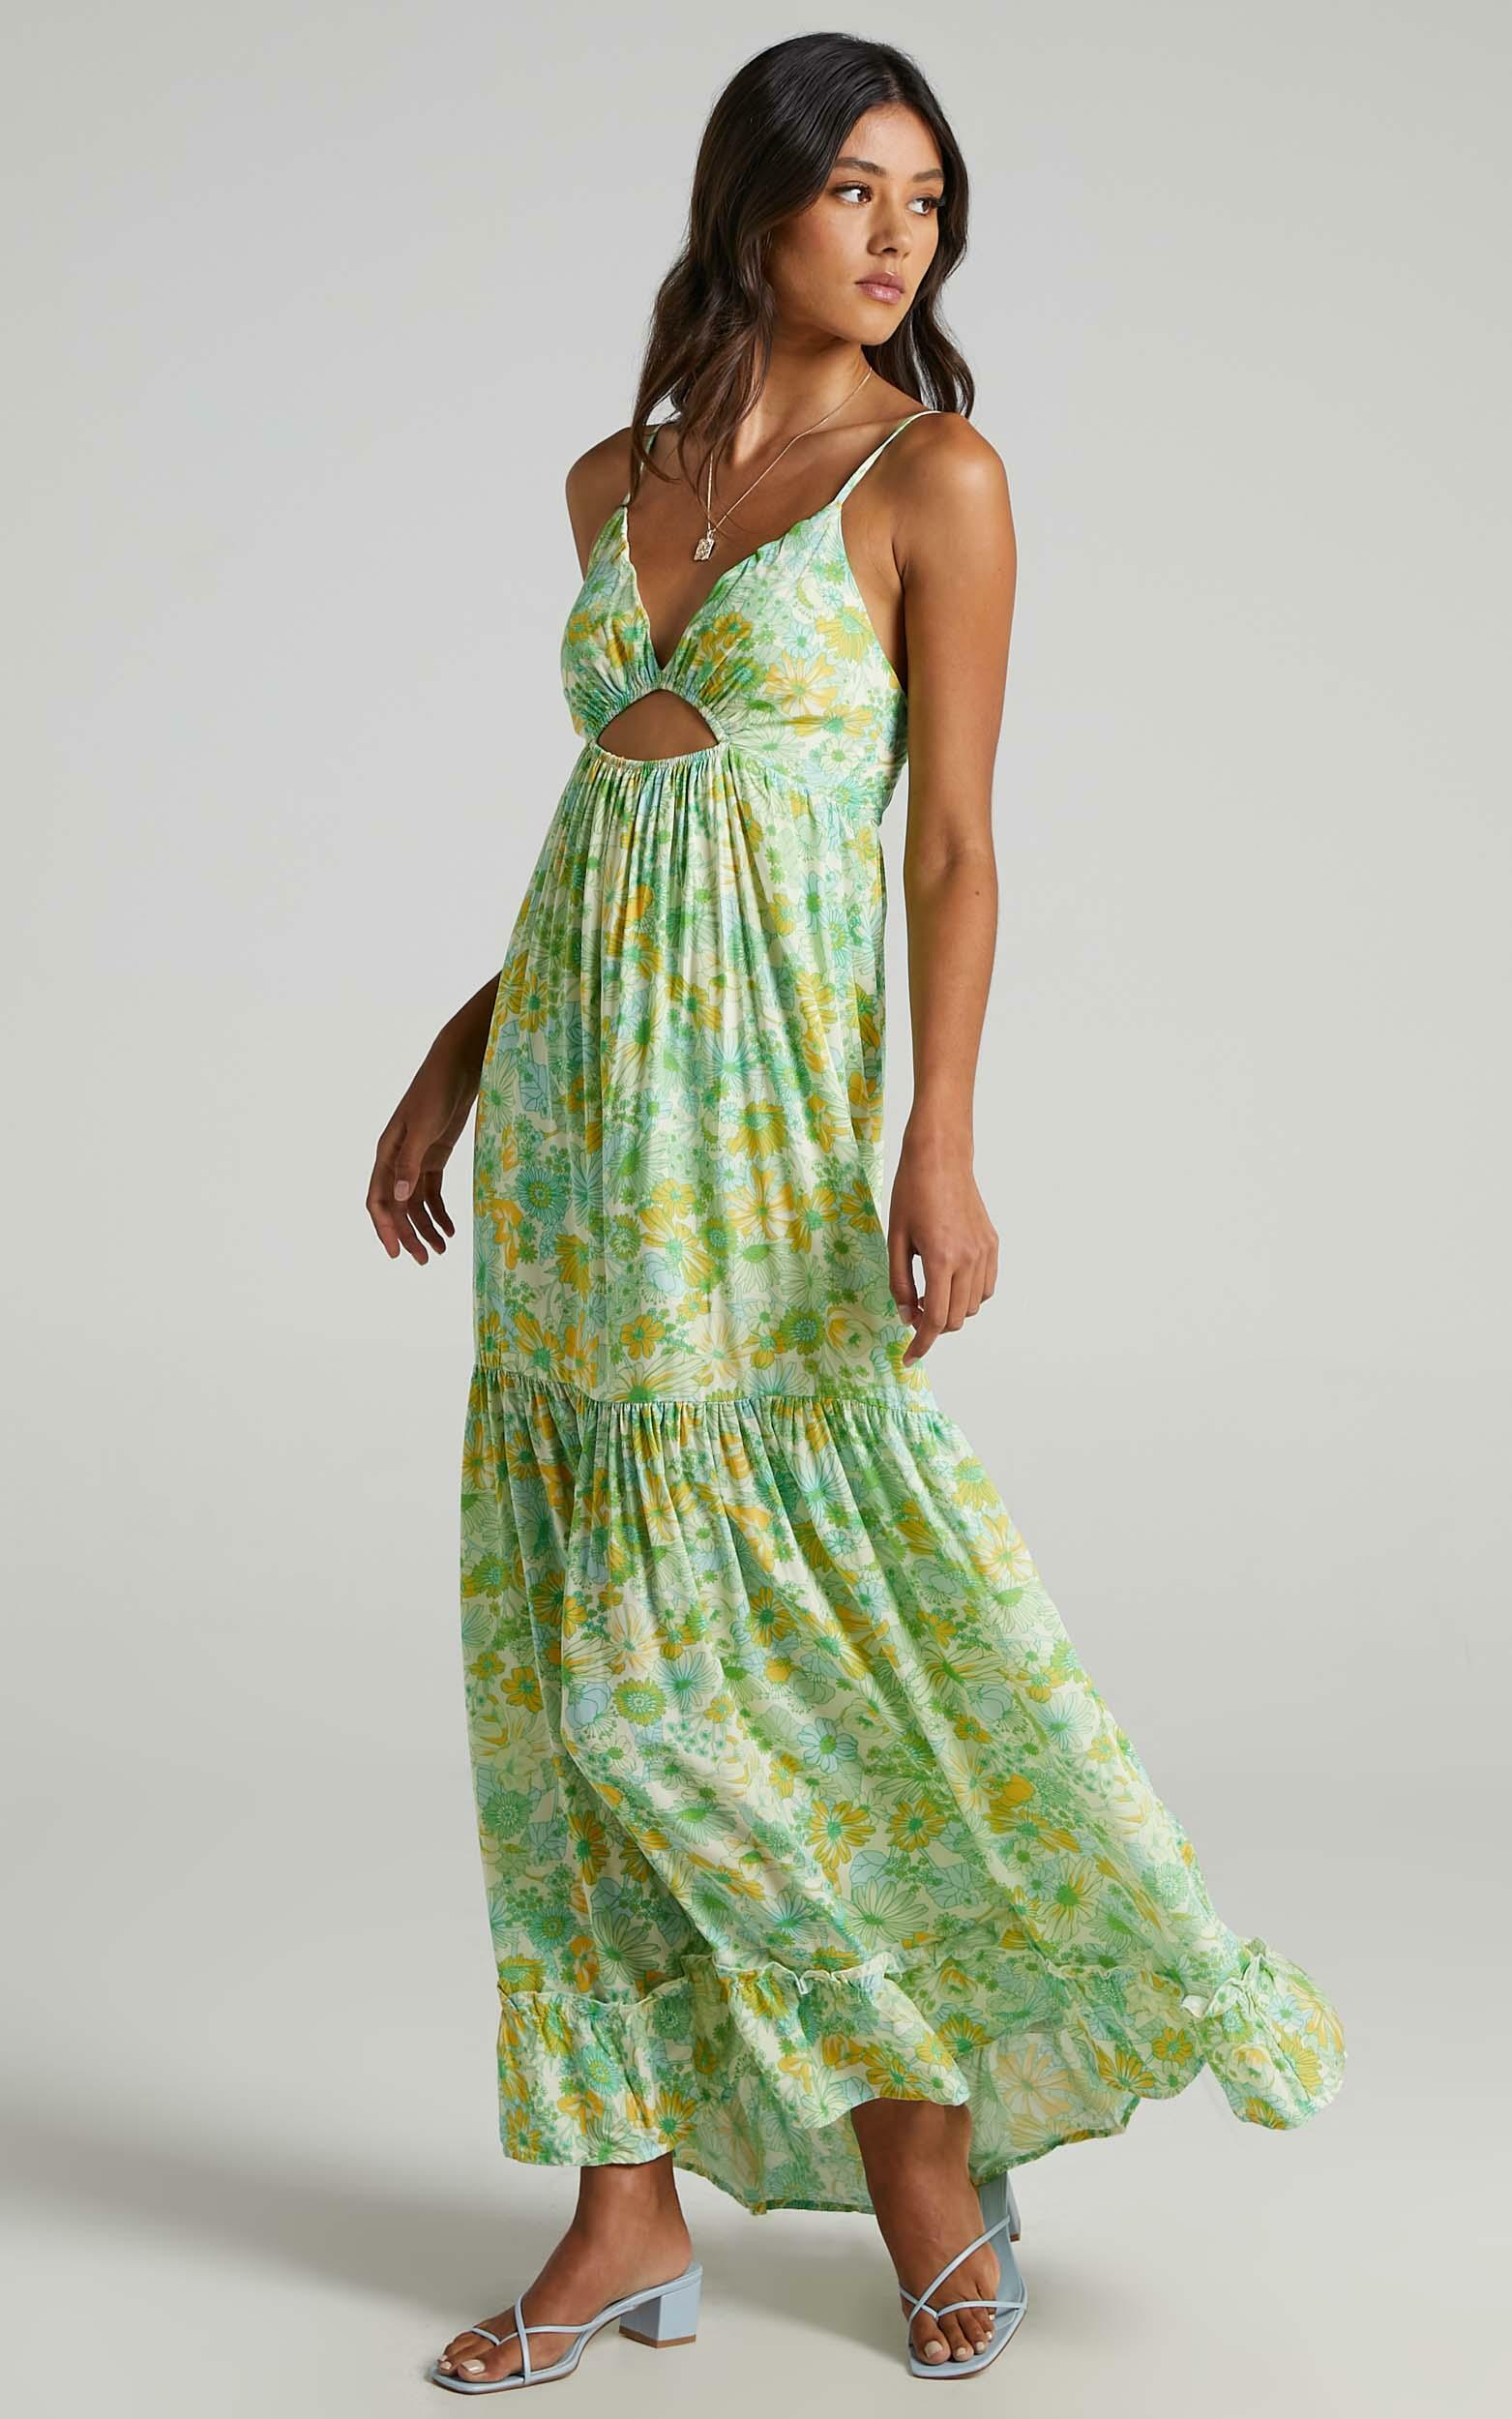 Bullona Dress in Fresh Floral - 6 (XS), Green, hi-res image number null